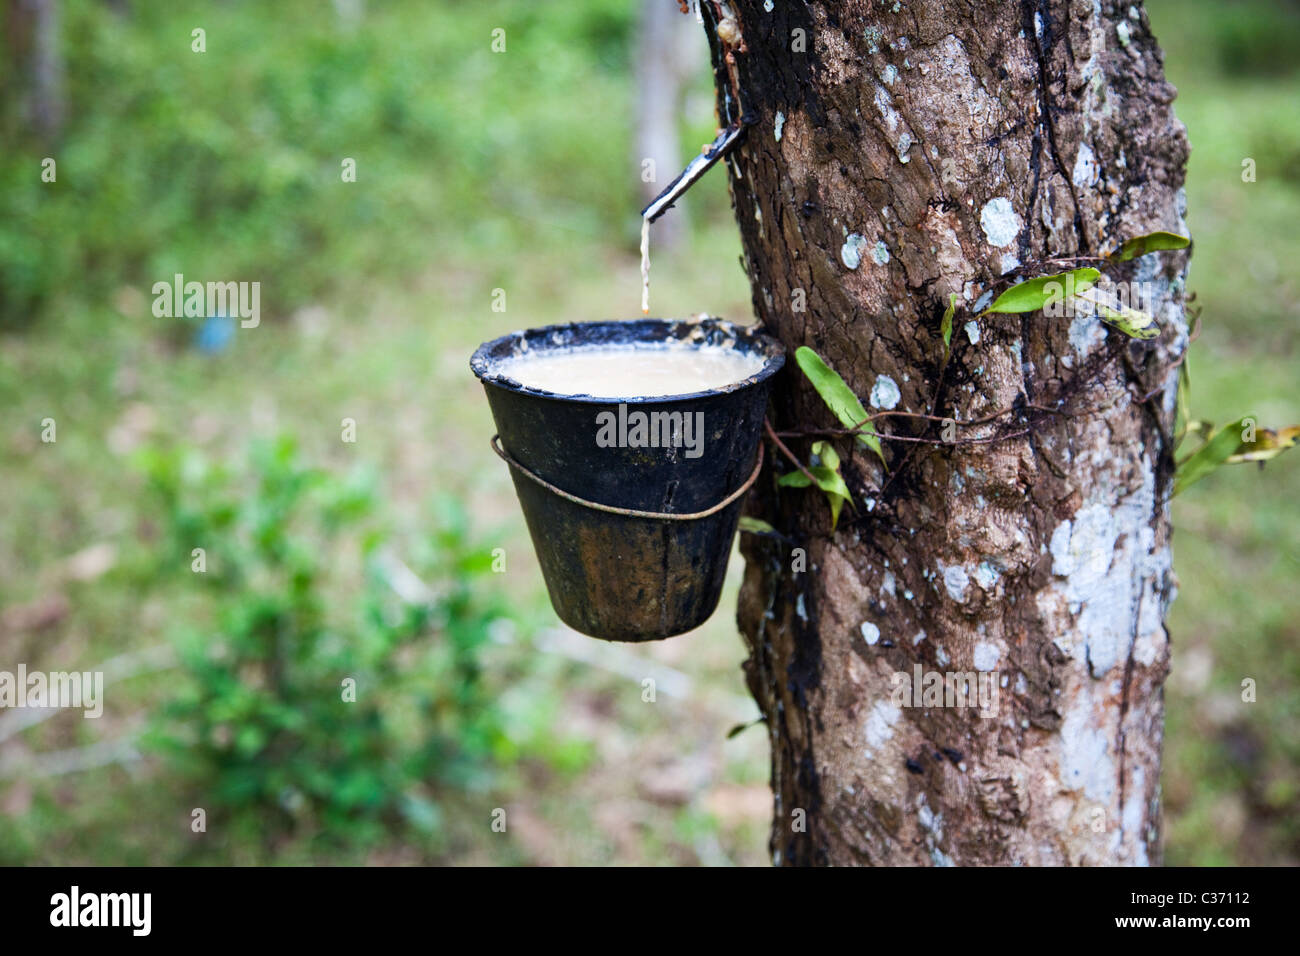 Latex Dripping from a Rubber Tree, Malaysia - Stock Image